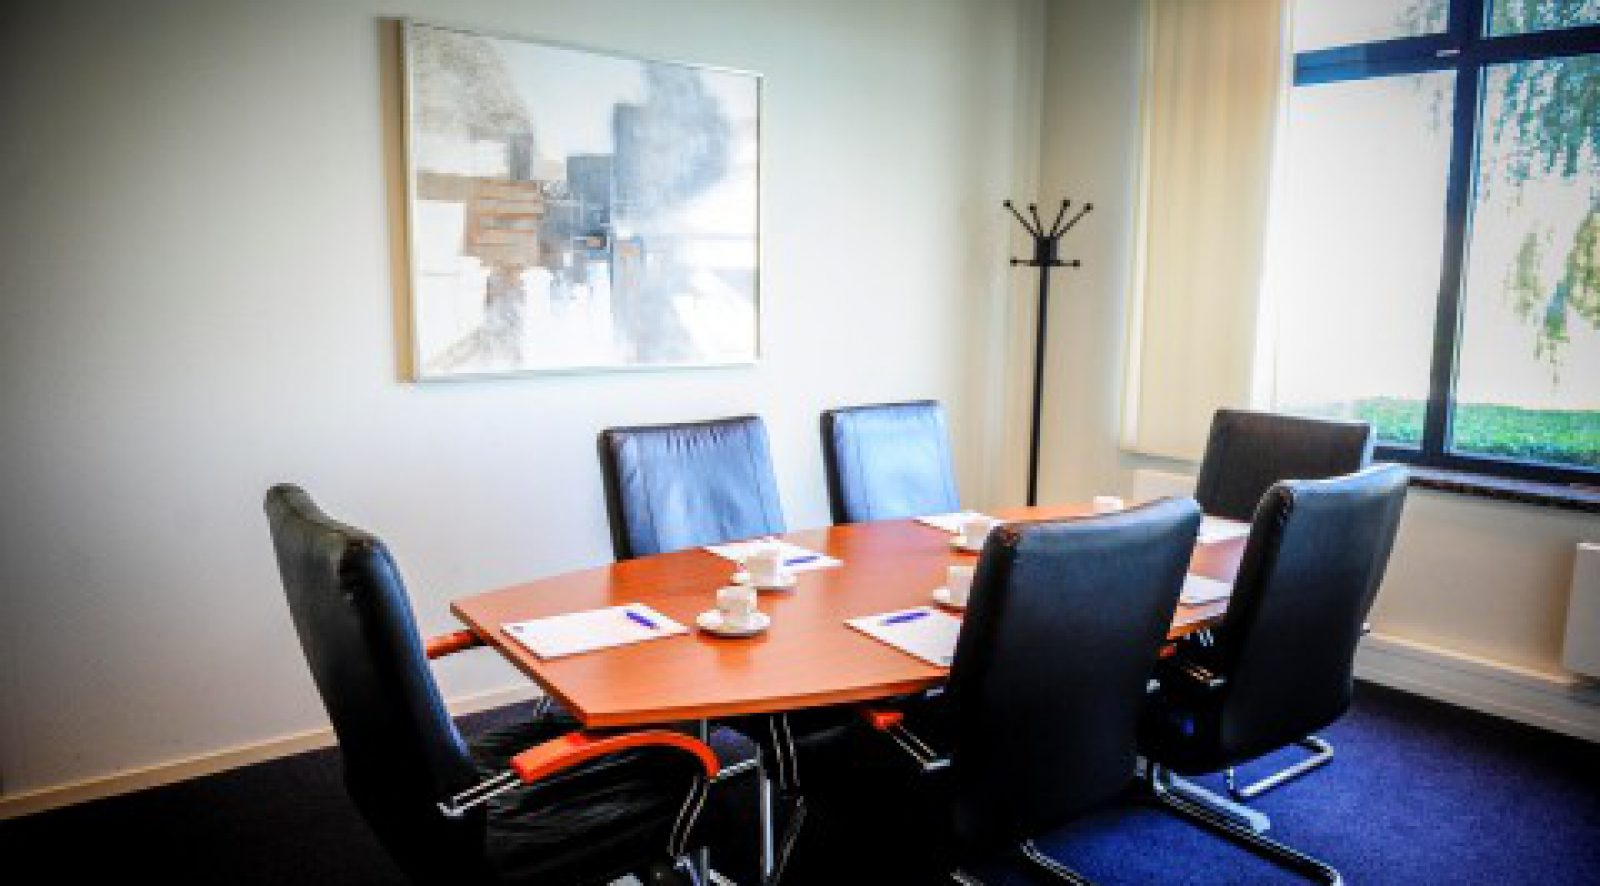 Vergaderzaal huren in Bodegraven | Crown Business Center Bodegraven